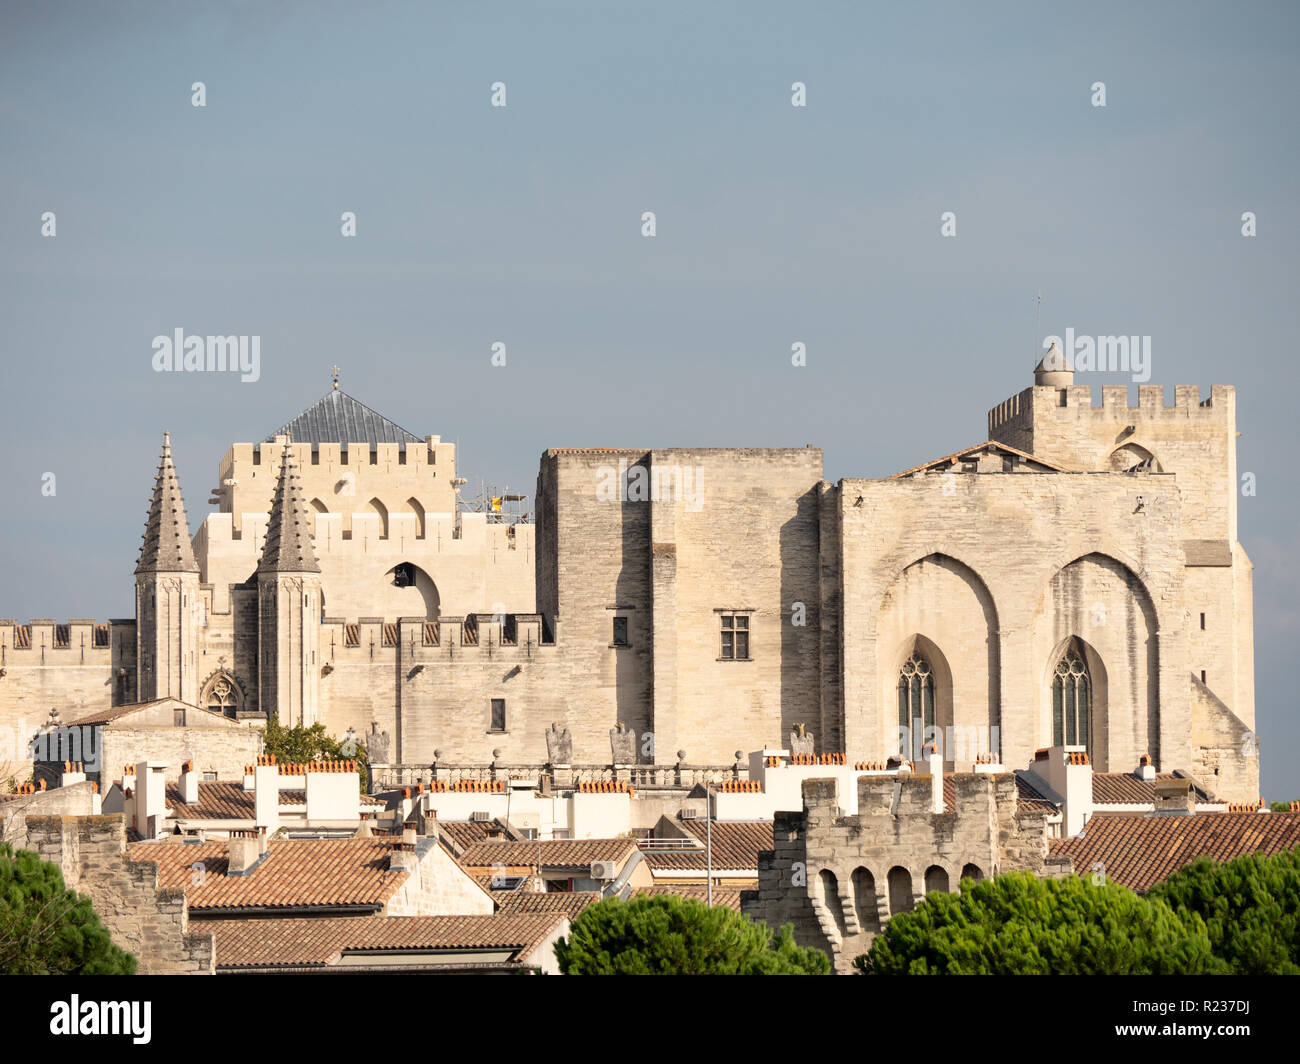 The Papal palace is an historical palace located in Avignon, southern France. It is one of the largest and most important medieval Gothic buildings in Stock Photo